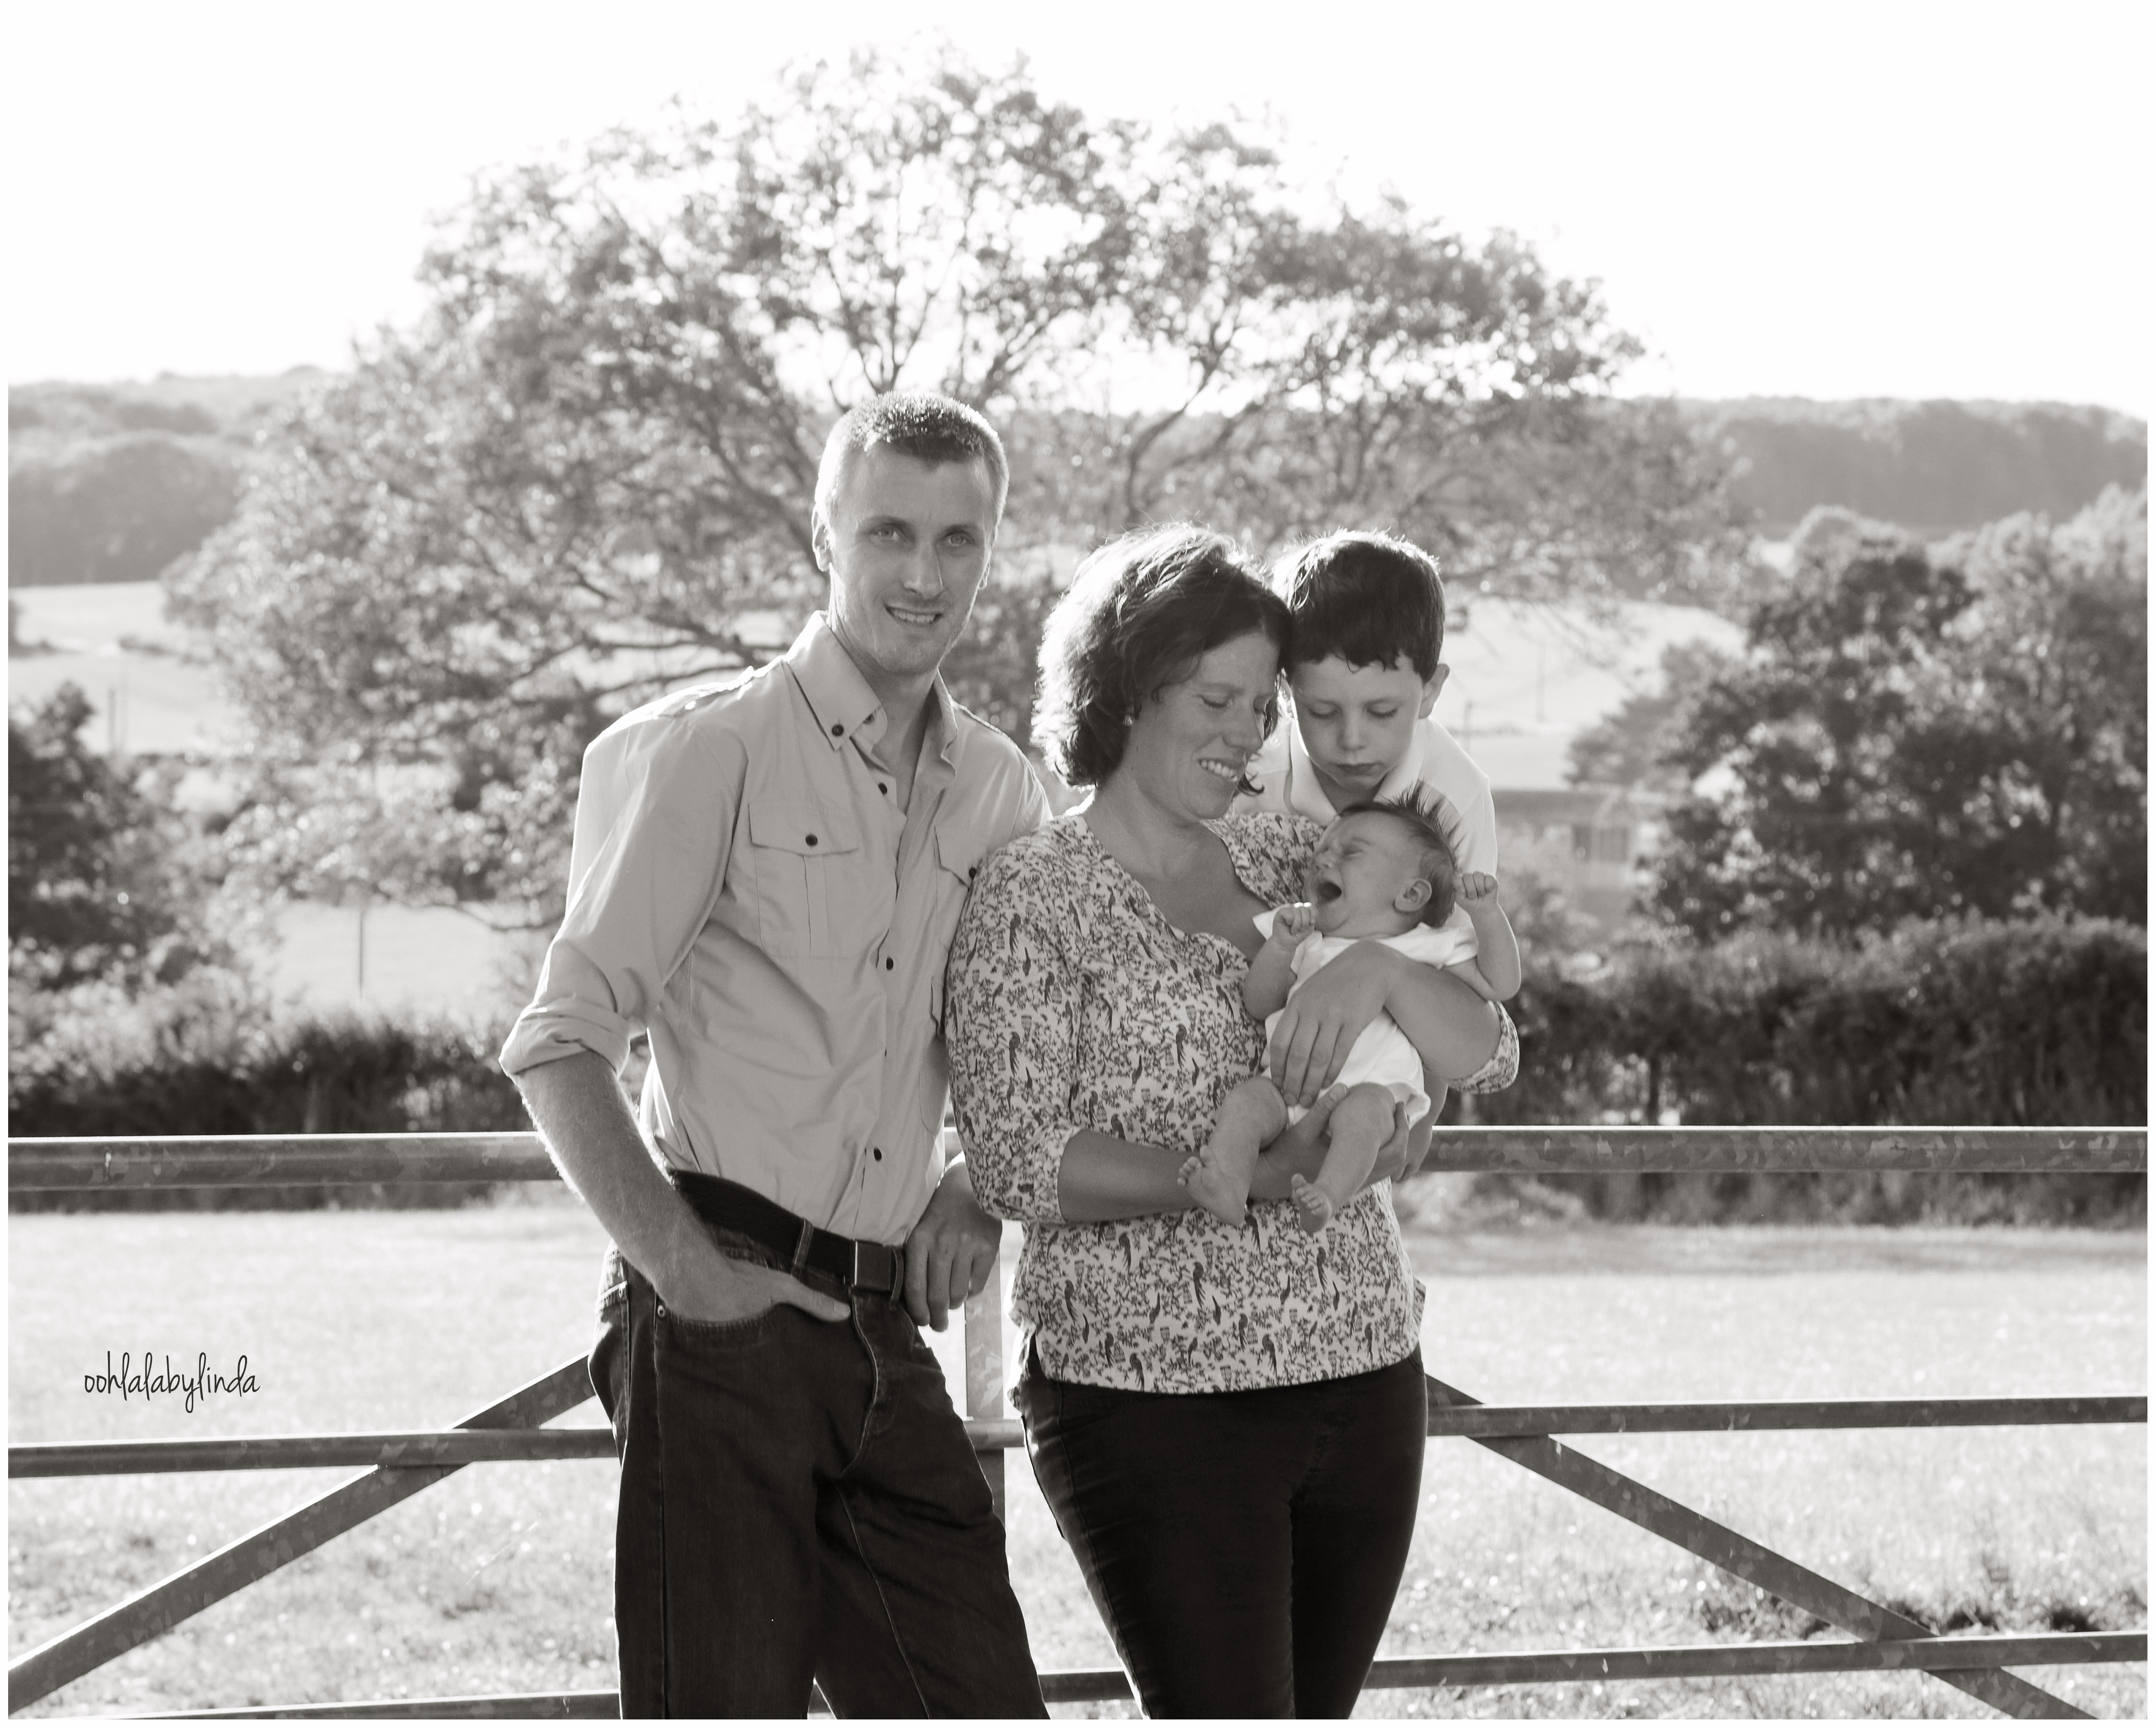 Black and white photograph of family with new baby outdoors